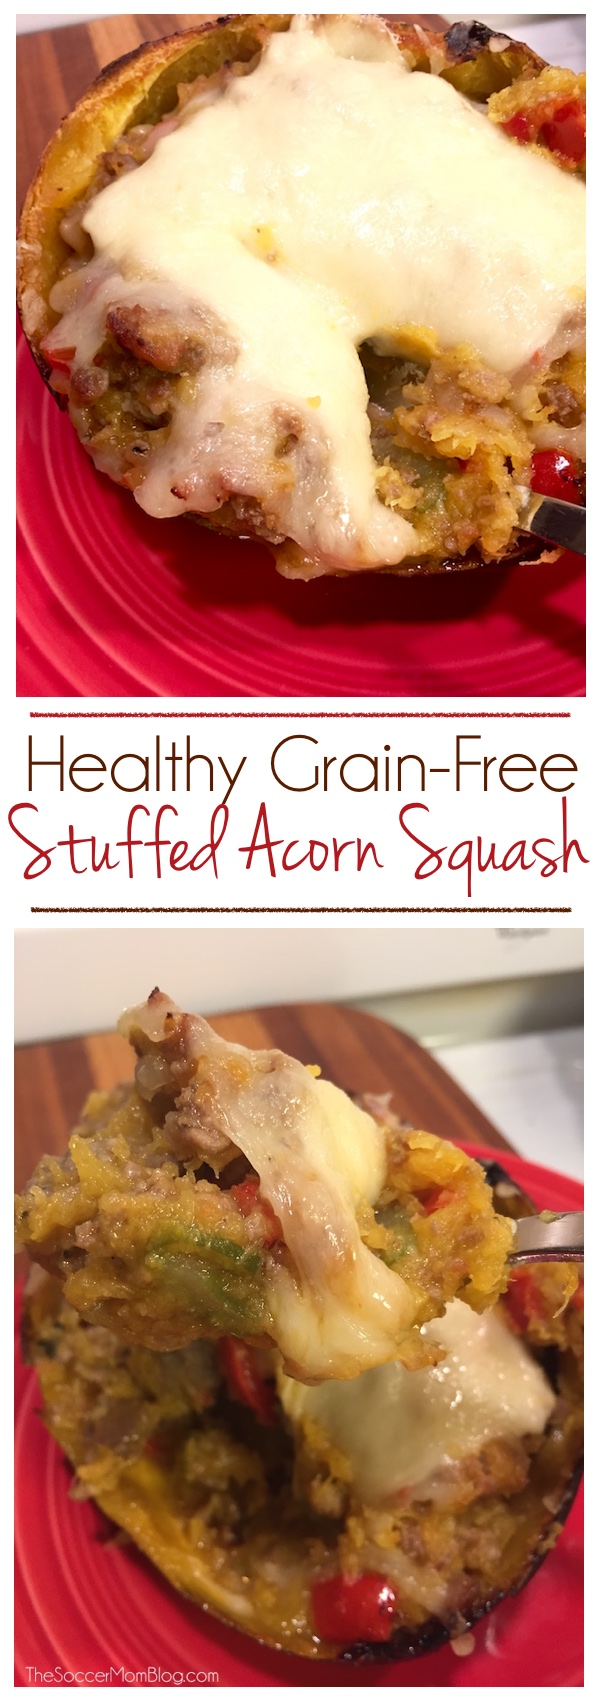 This is one of those recipes that just feels like Fall! Healthy, filling, and easy -- it would make a great Thanksgiving side dish!